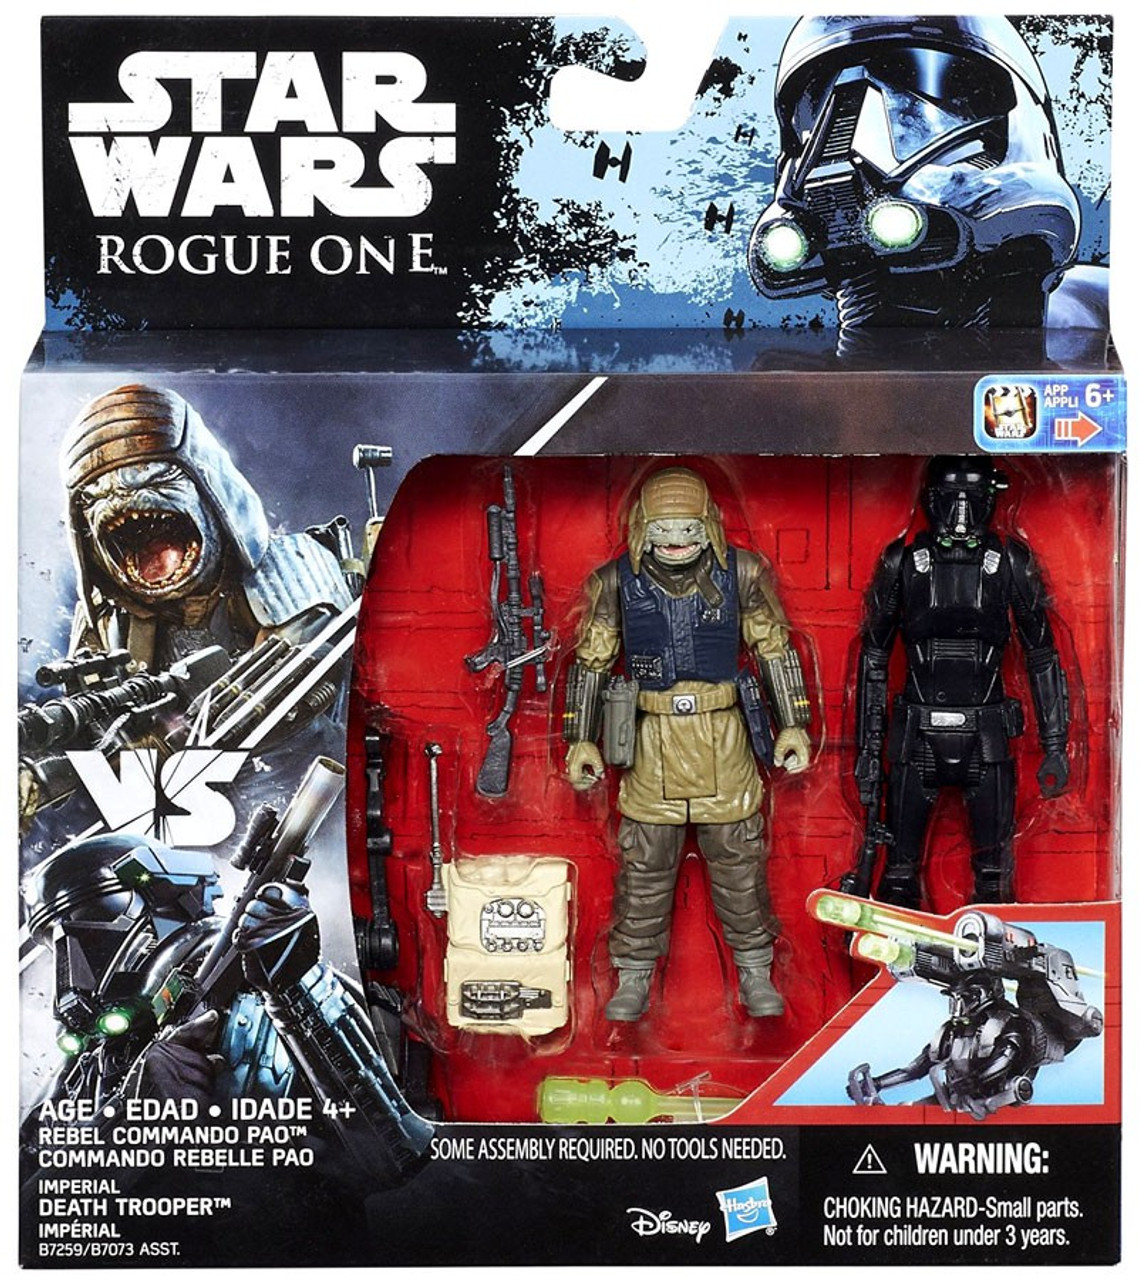 Starwars Event Fnaf Rp Help Wanted Roblox Star Wars Rogue One Rebel Cammando Pao Imperial Death Trooper 3 75 Action Figure 2 Pack Hasbro Toys Toywiz